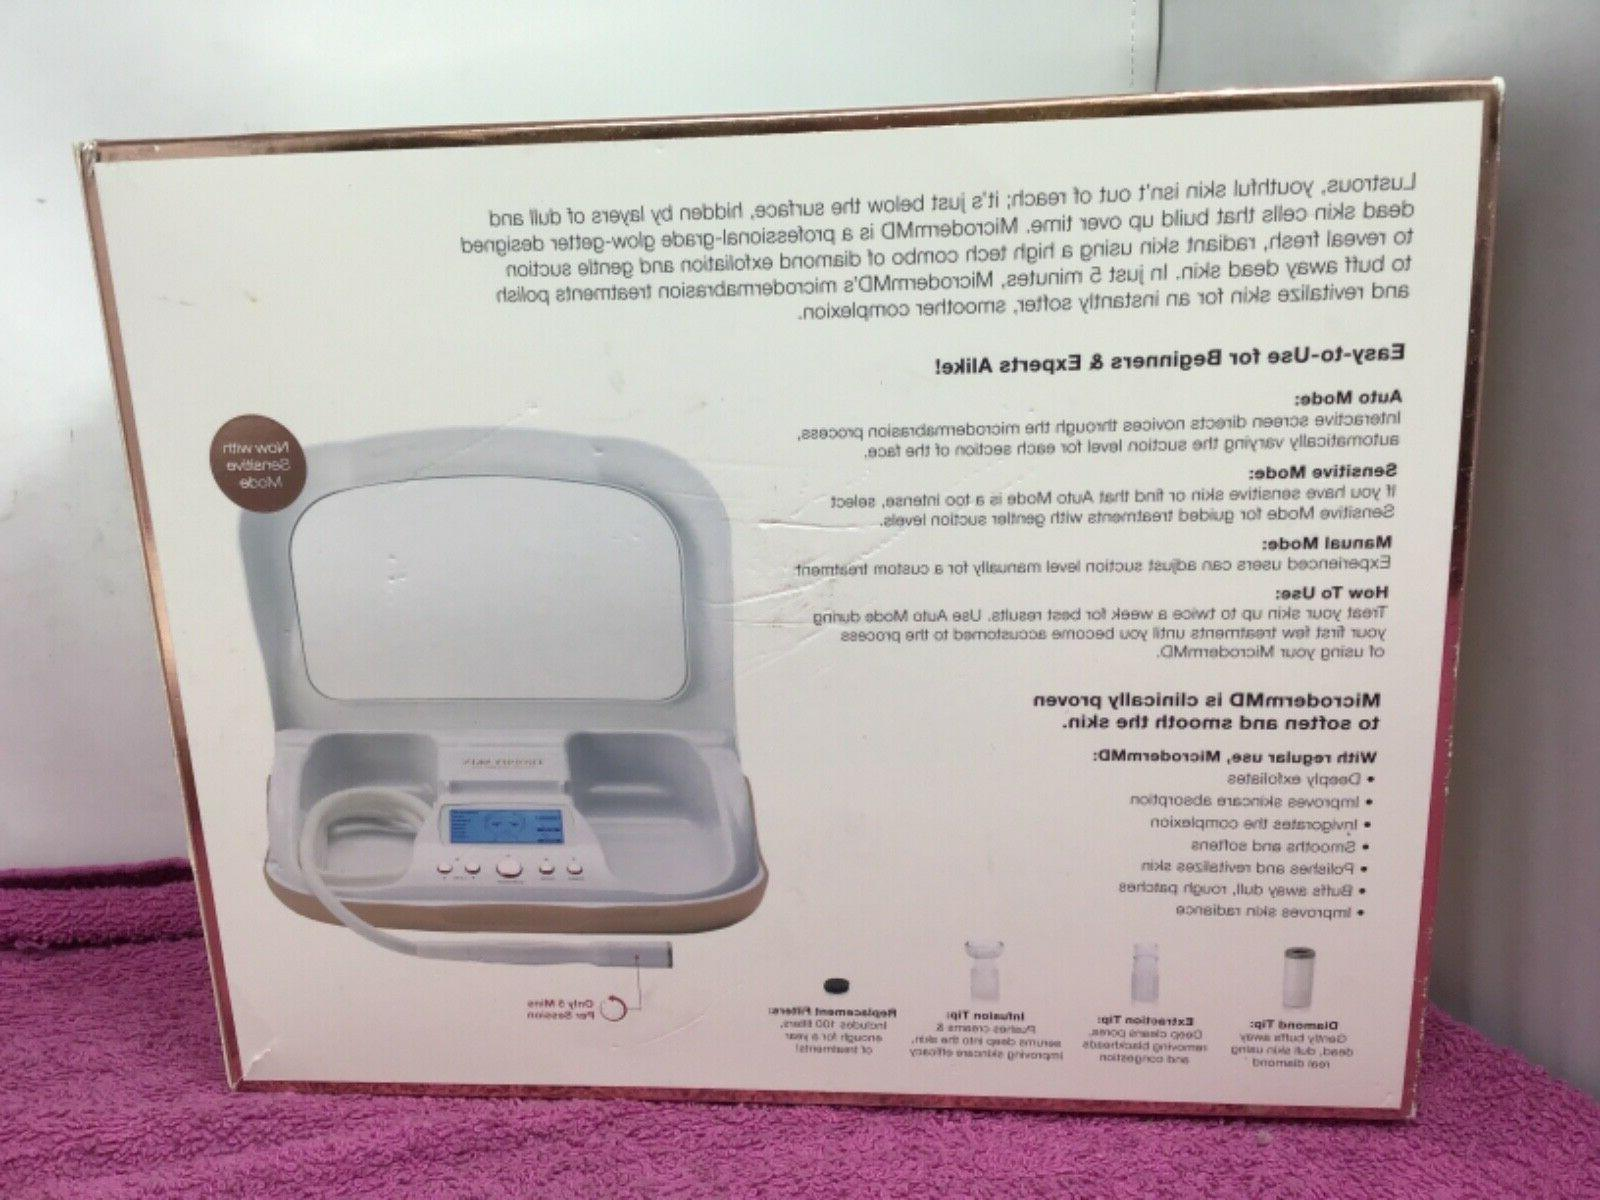 Trophy Skin Home Microdermabrasion System USED